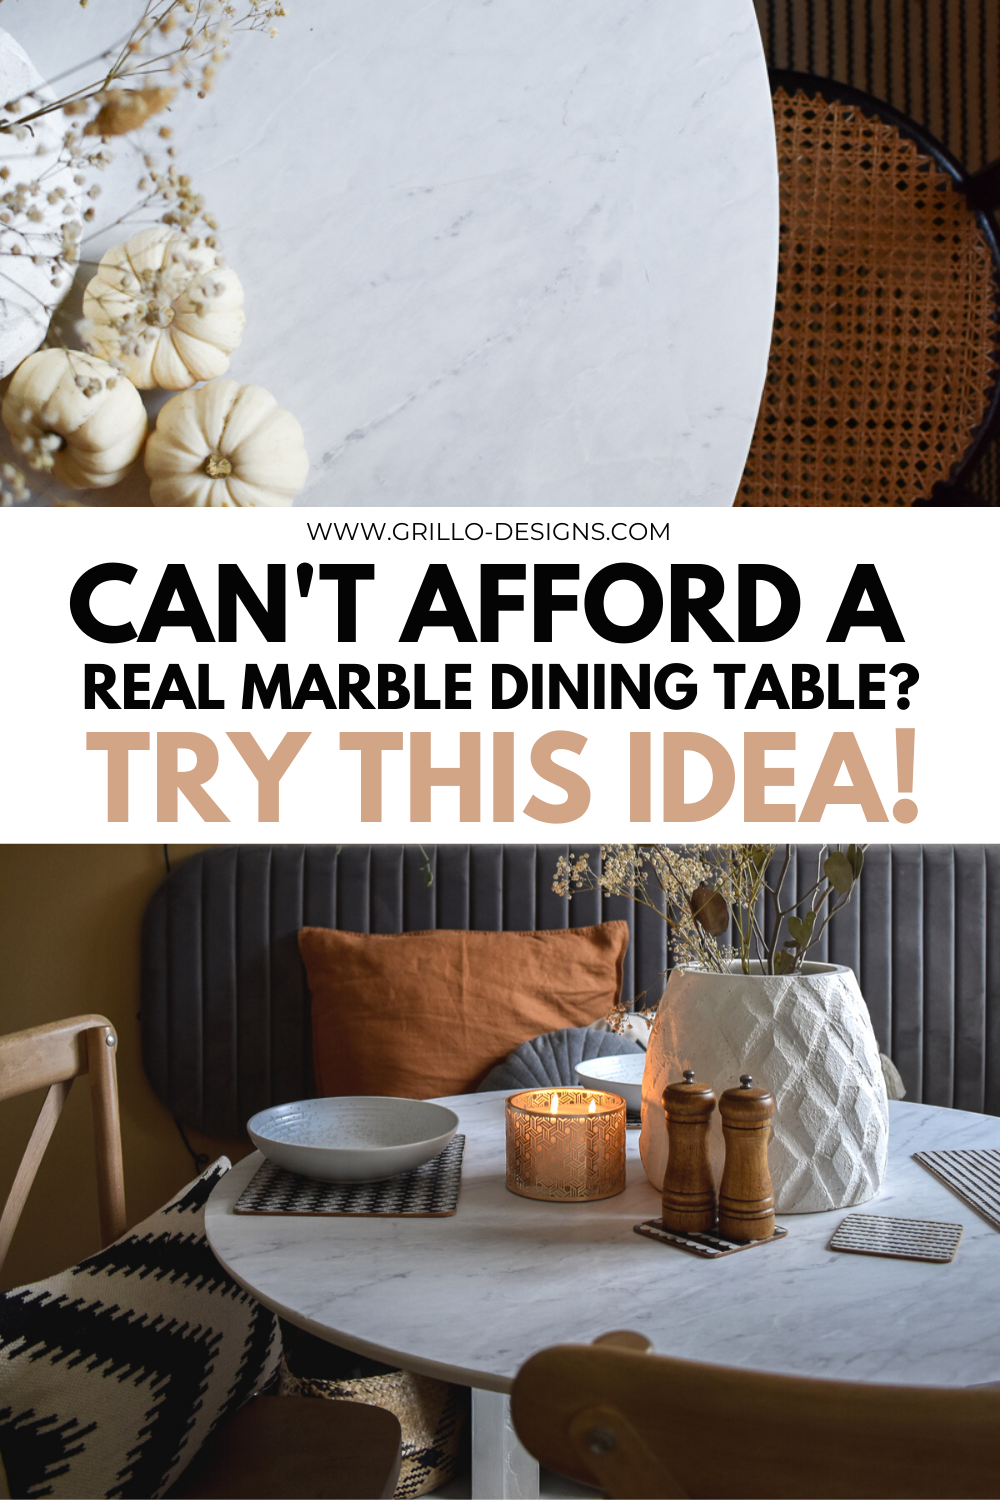 Diy marble pinterest graphic with text that say, cant afford a real marble table? Try this idea!